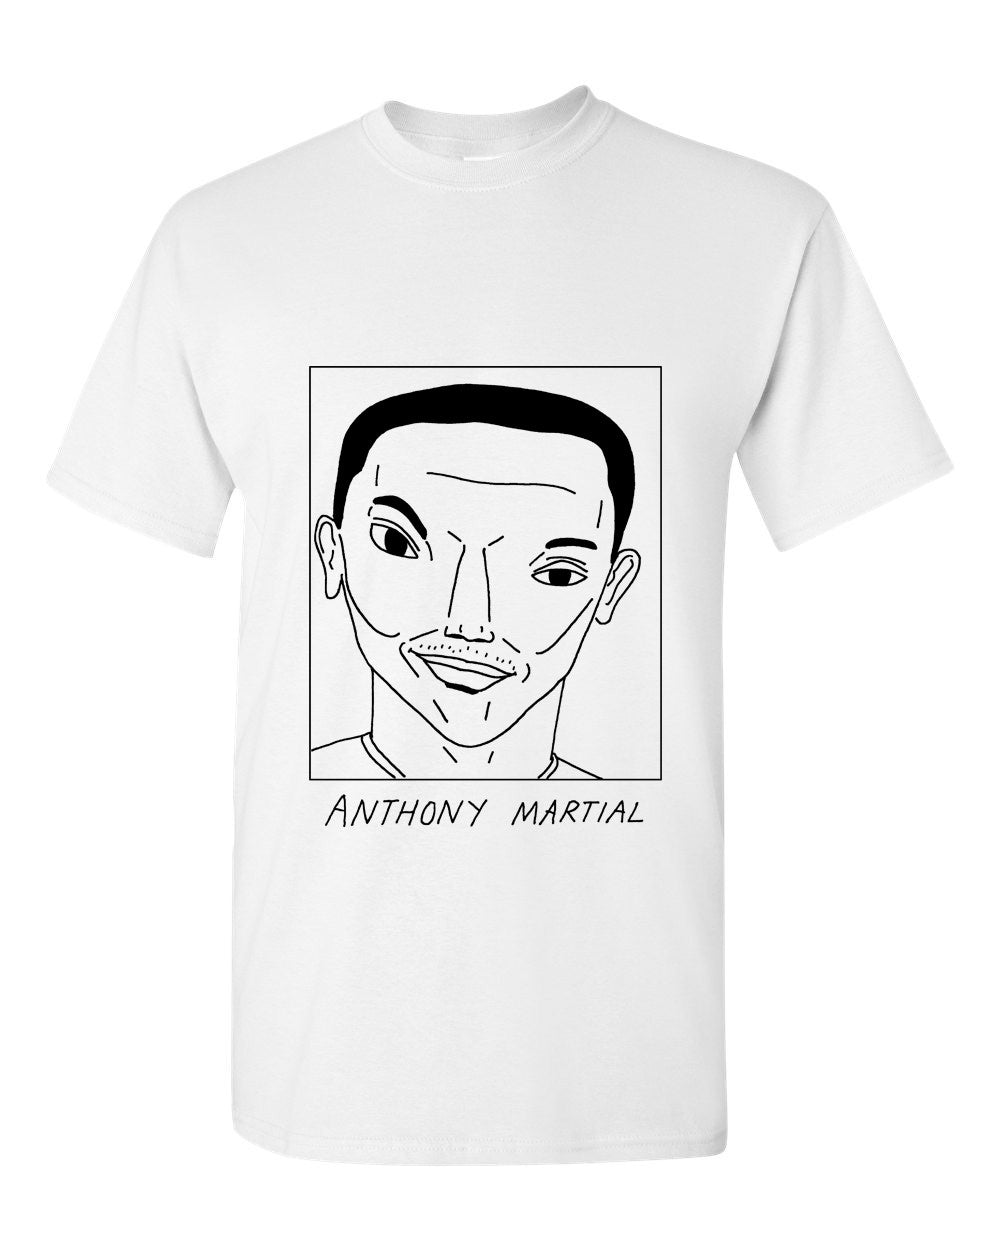 Badly Drawn Anthony Martial T-shirt - Manchester United FC